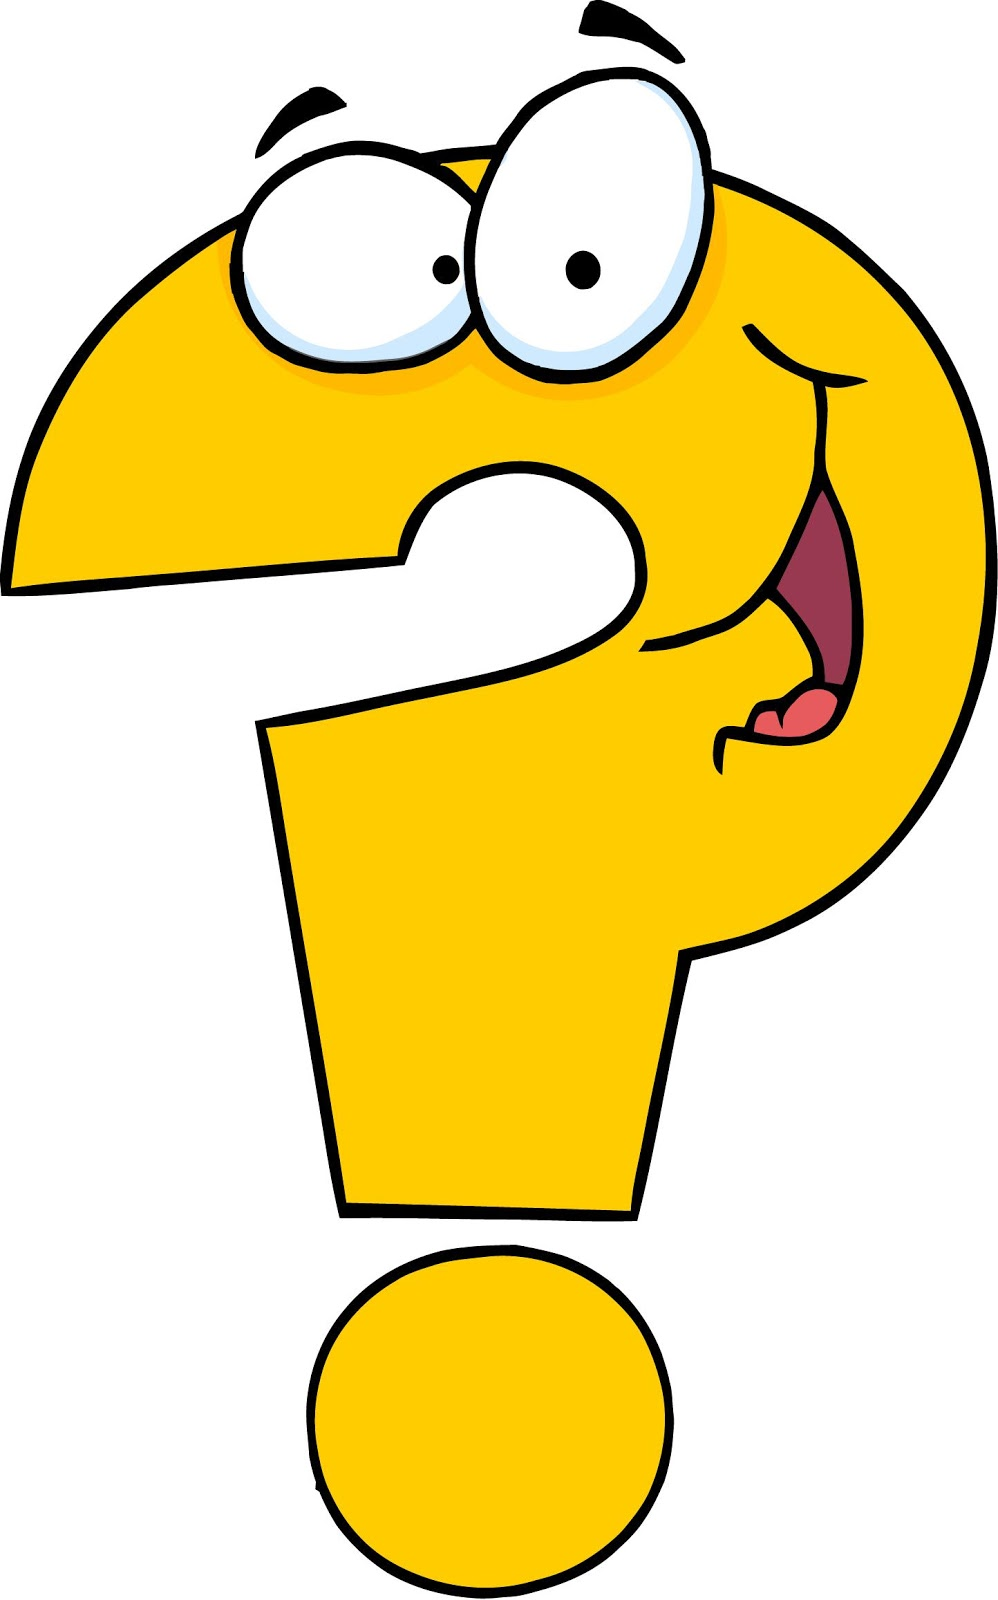 question - Question Mark Clipart